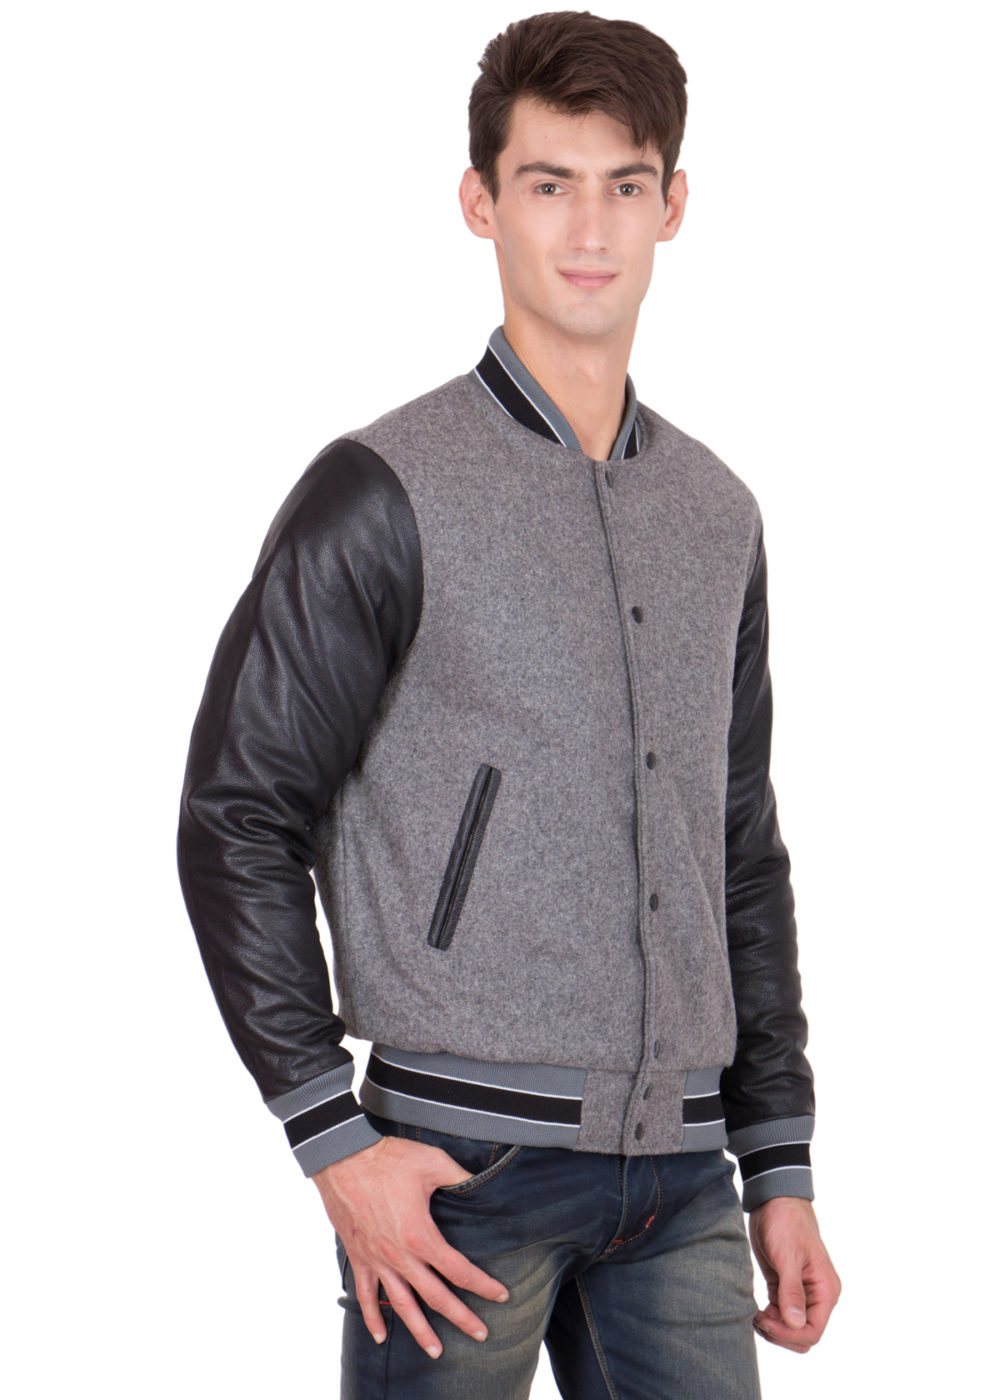 BLACK LEATHER SLEEVES & GREY WOOL BODY VARSITY JACKET-MEN